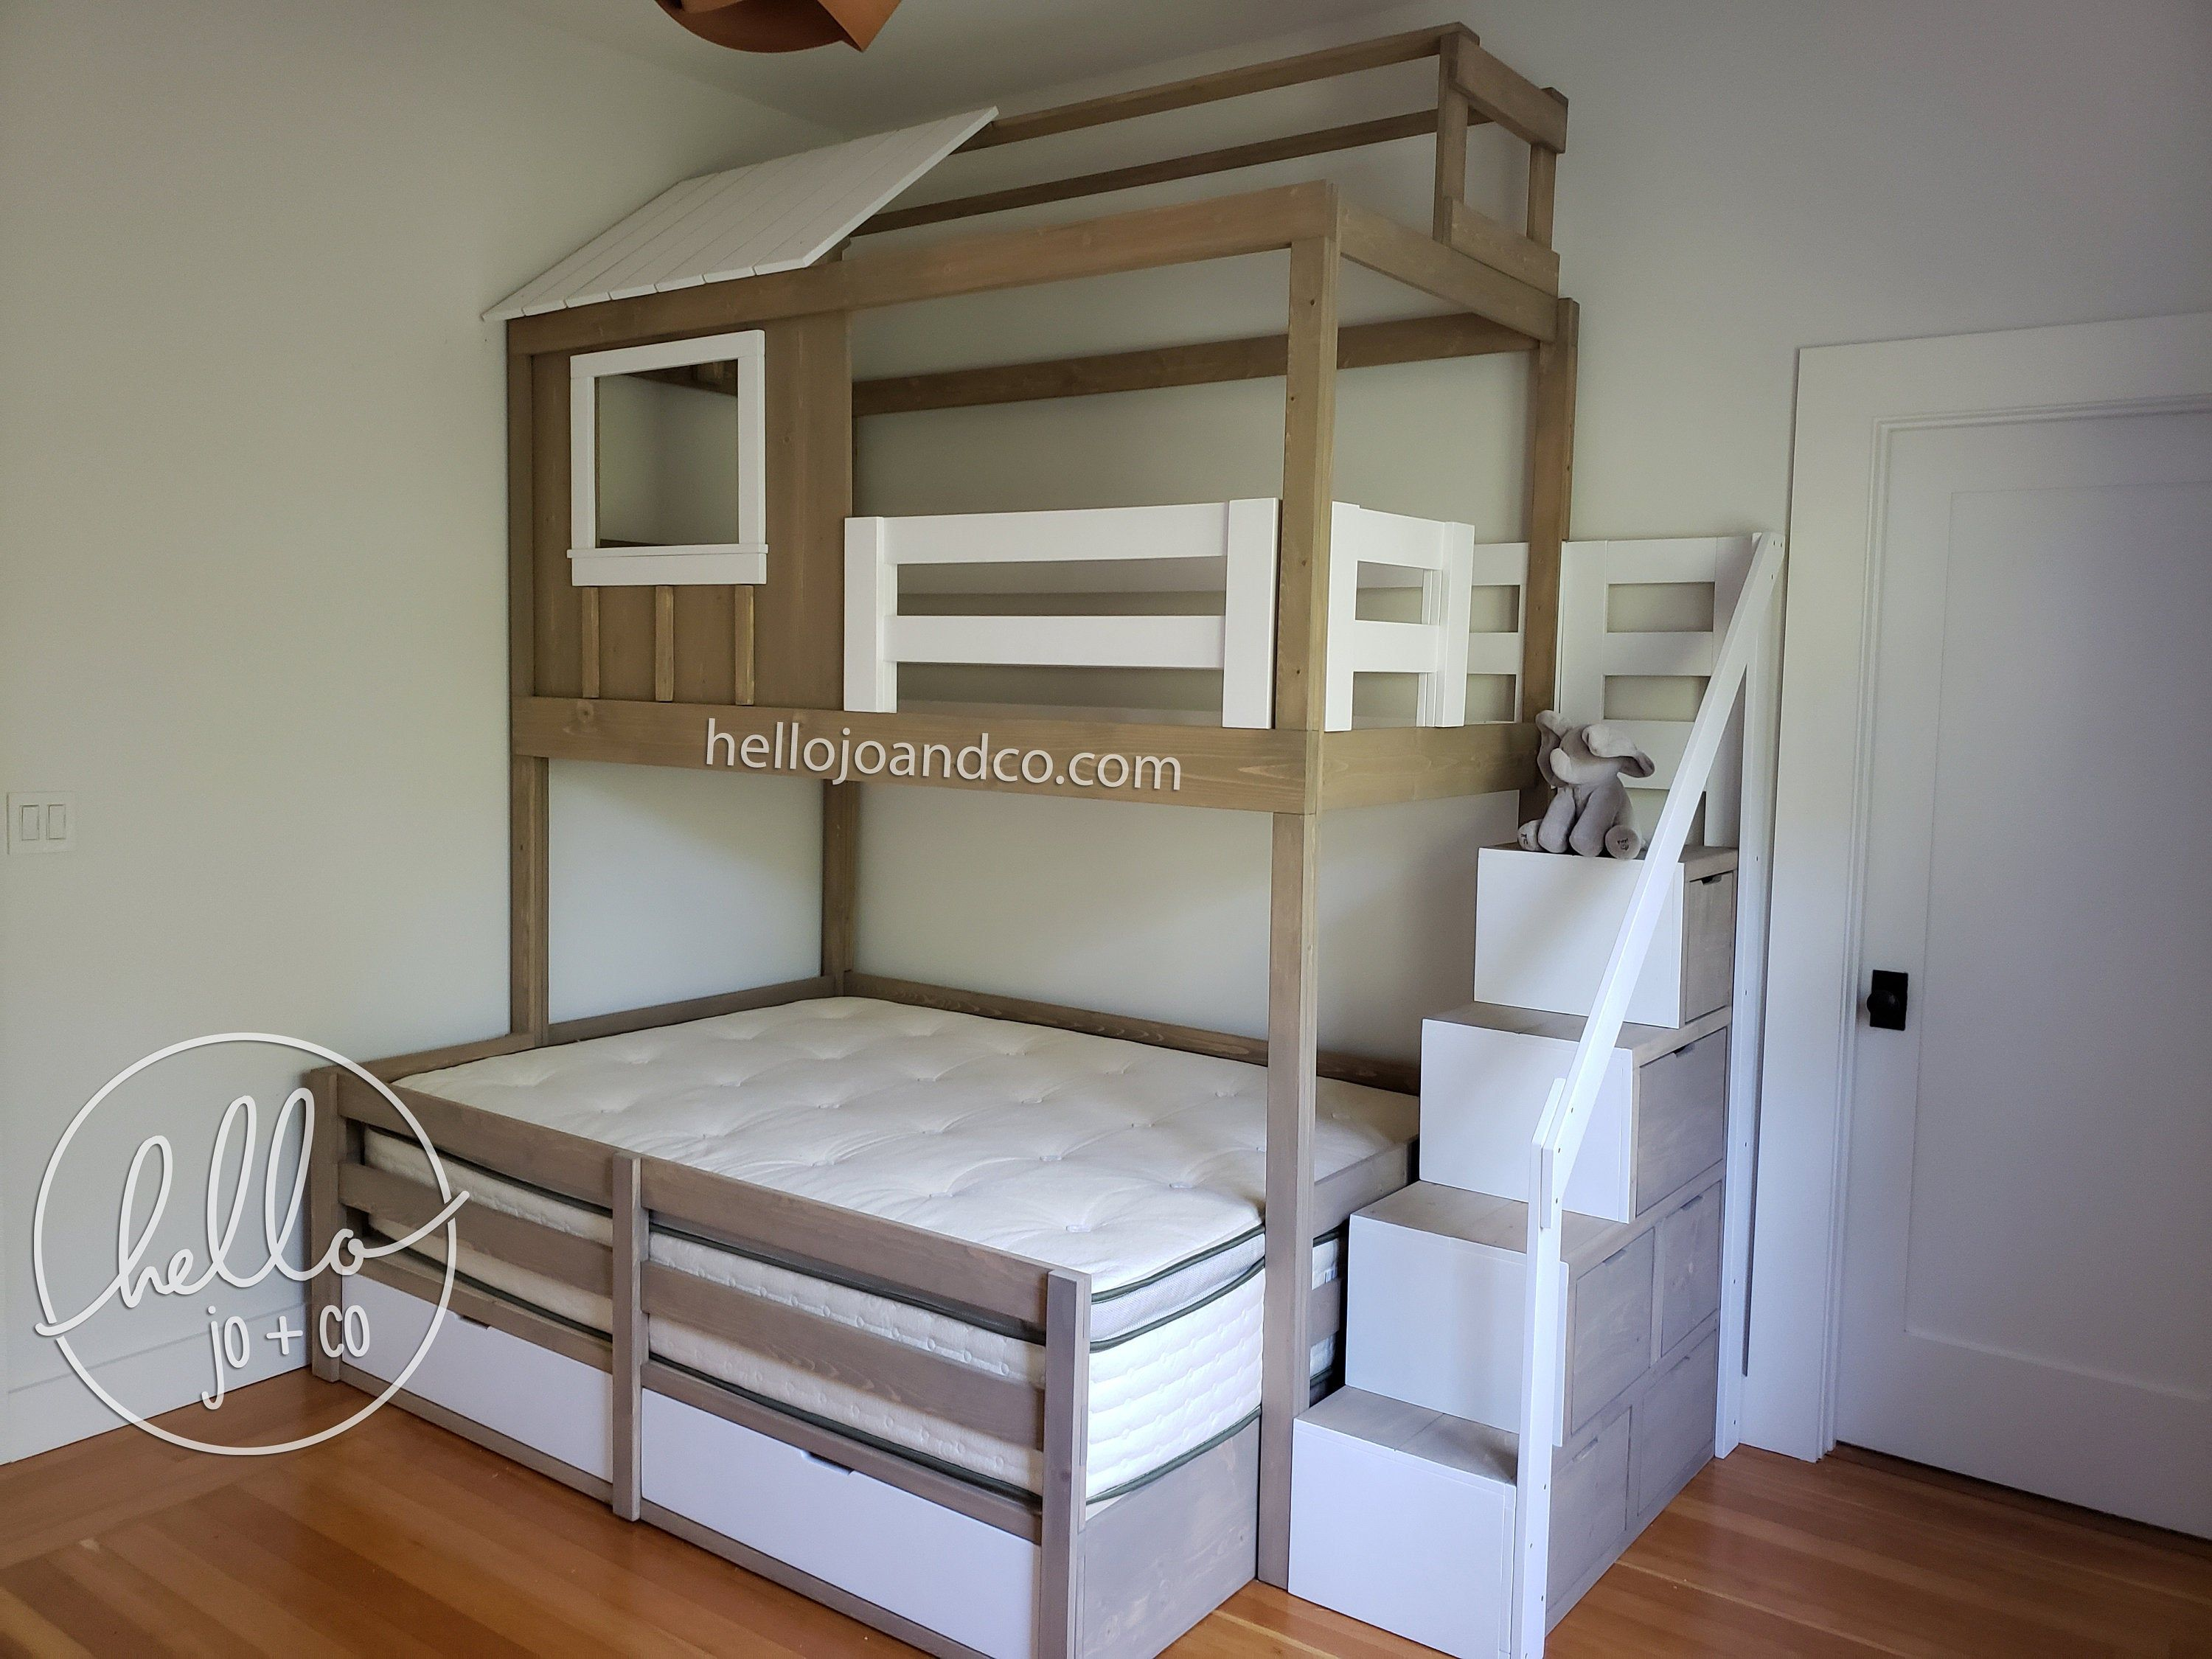 Solid Wood Loft Bed Bunk Bed Bunk Bed With Stairs Etsy Bunk Beds With Stairs Bunk Beds Loft Bed